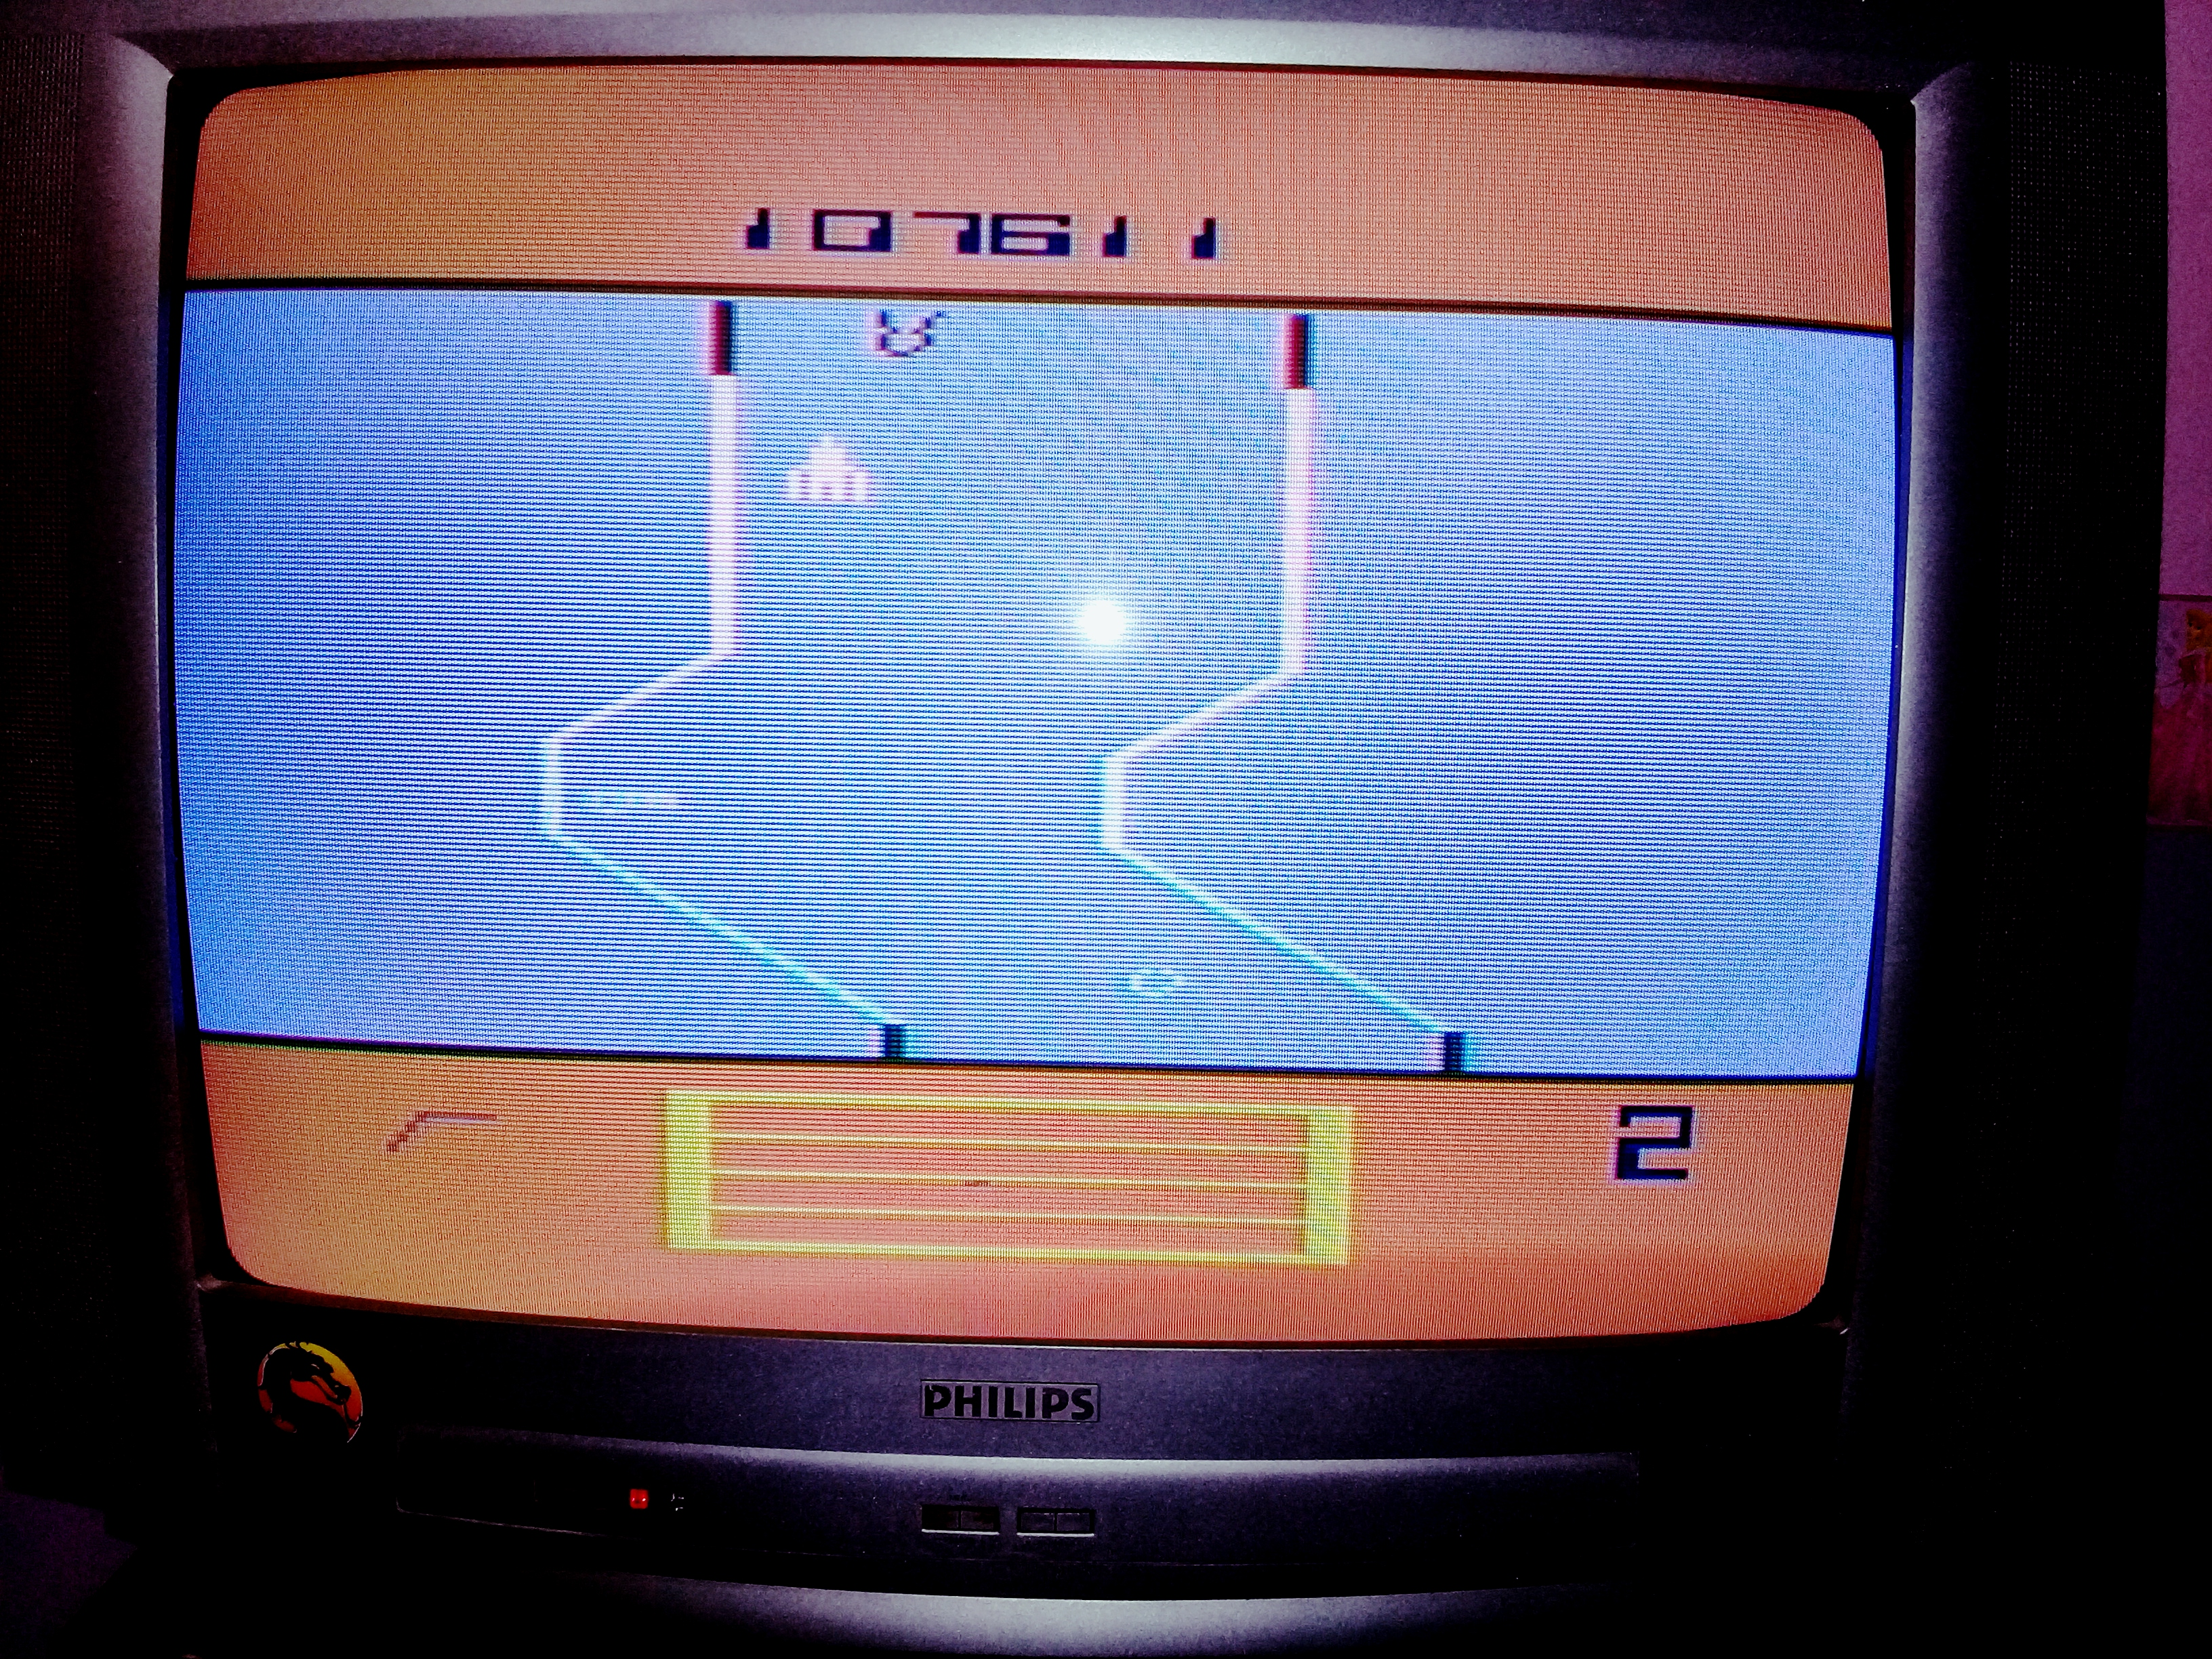 omargeddon: Fantastic Voyage [Game 2] (Atari 400/800/XL/XE) 107,611 points on 2020-09-06 01:59:59